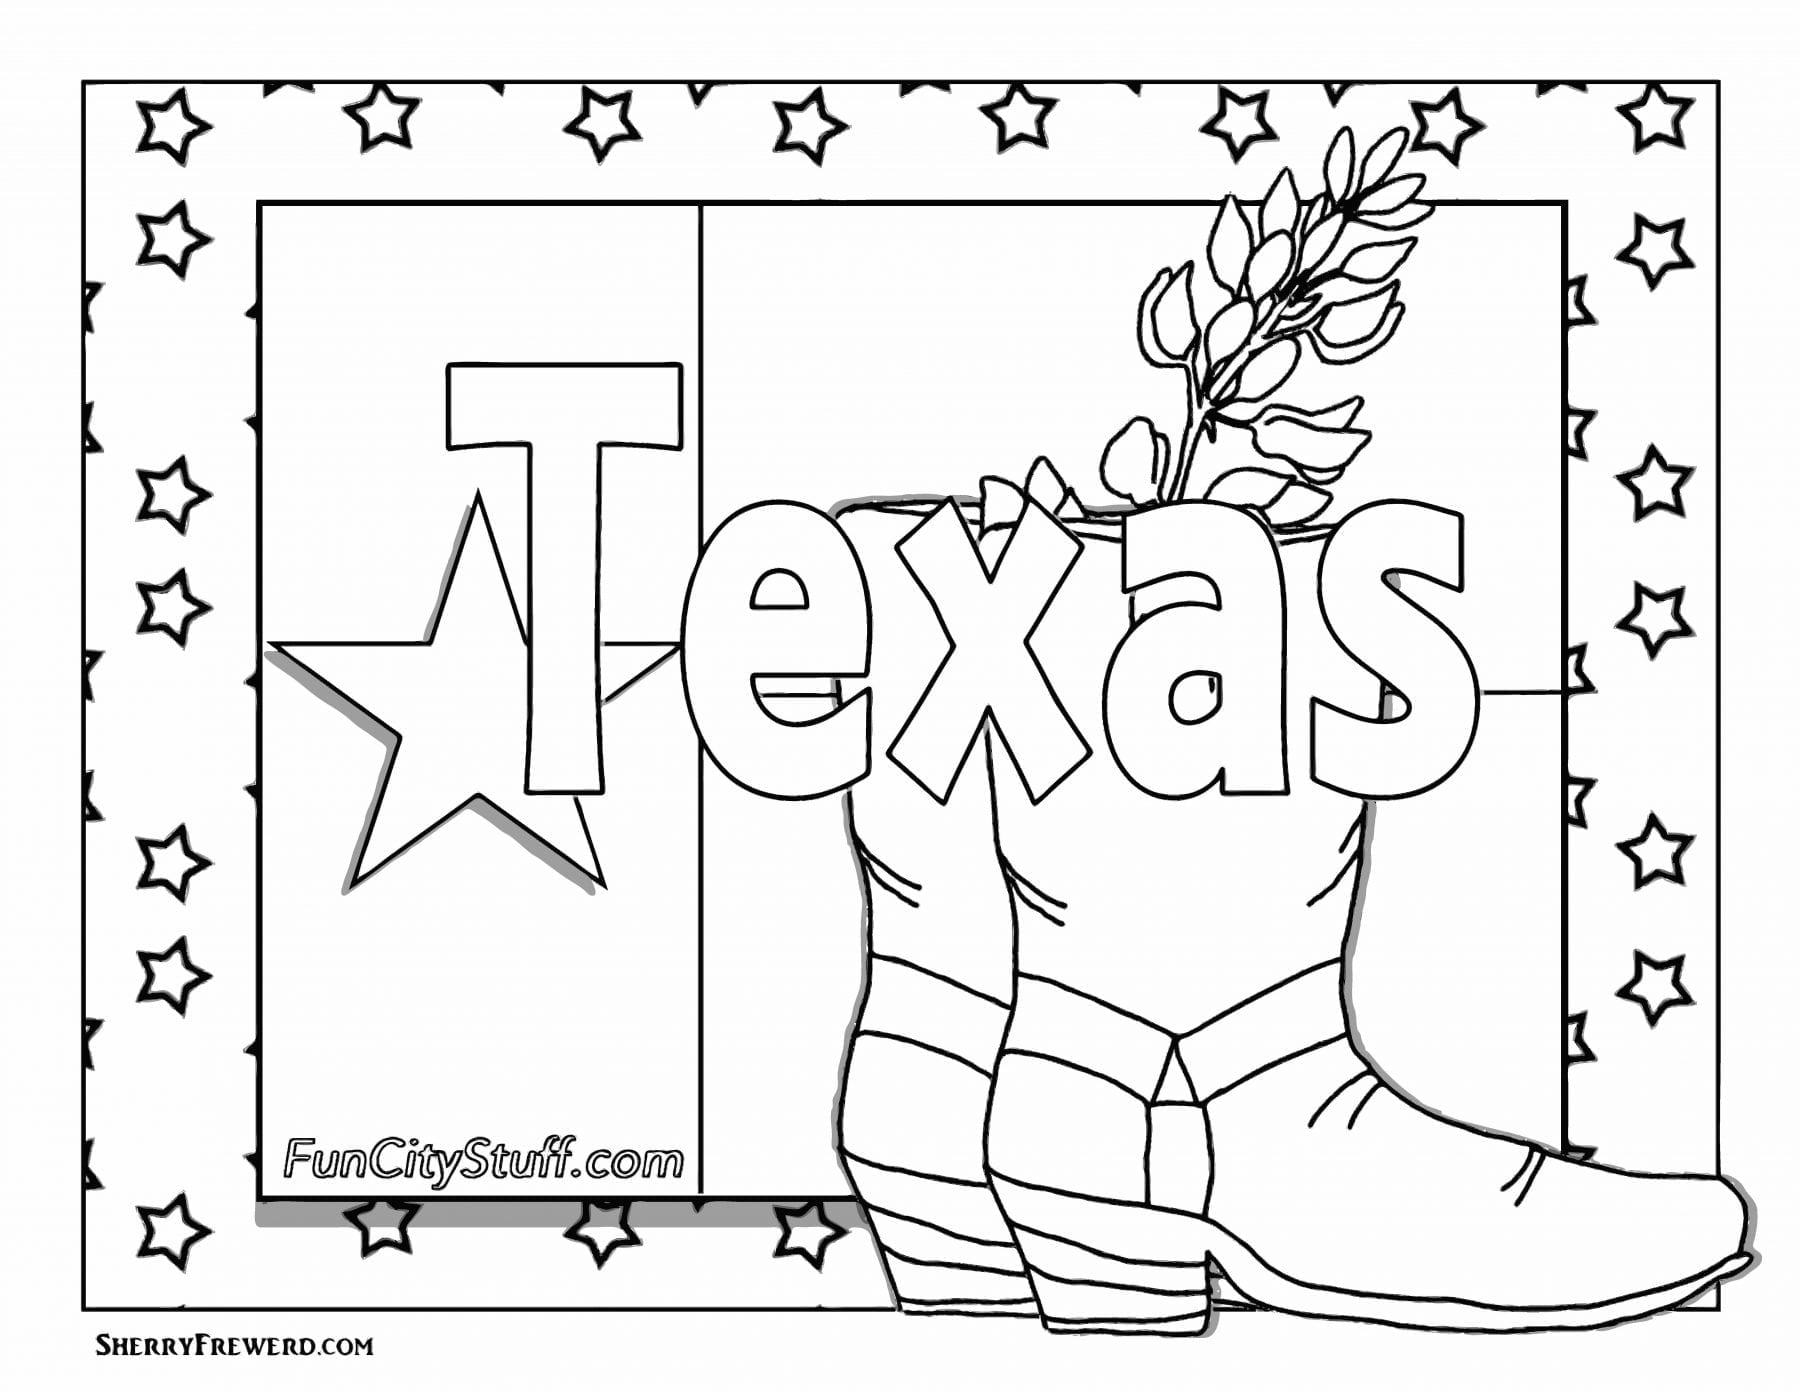 texas state seal coloring page texas state seal coloring page coloring pages texas page coloring seal state